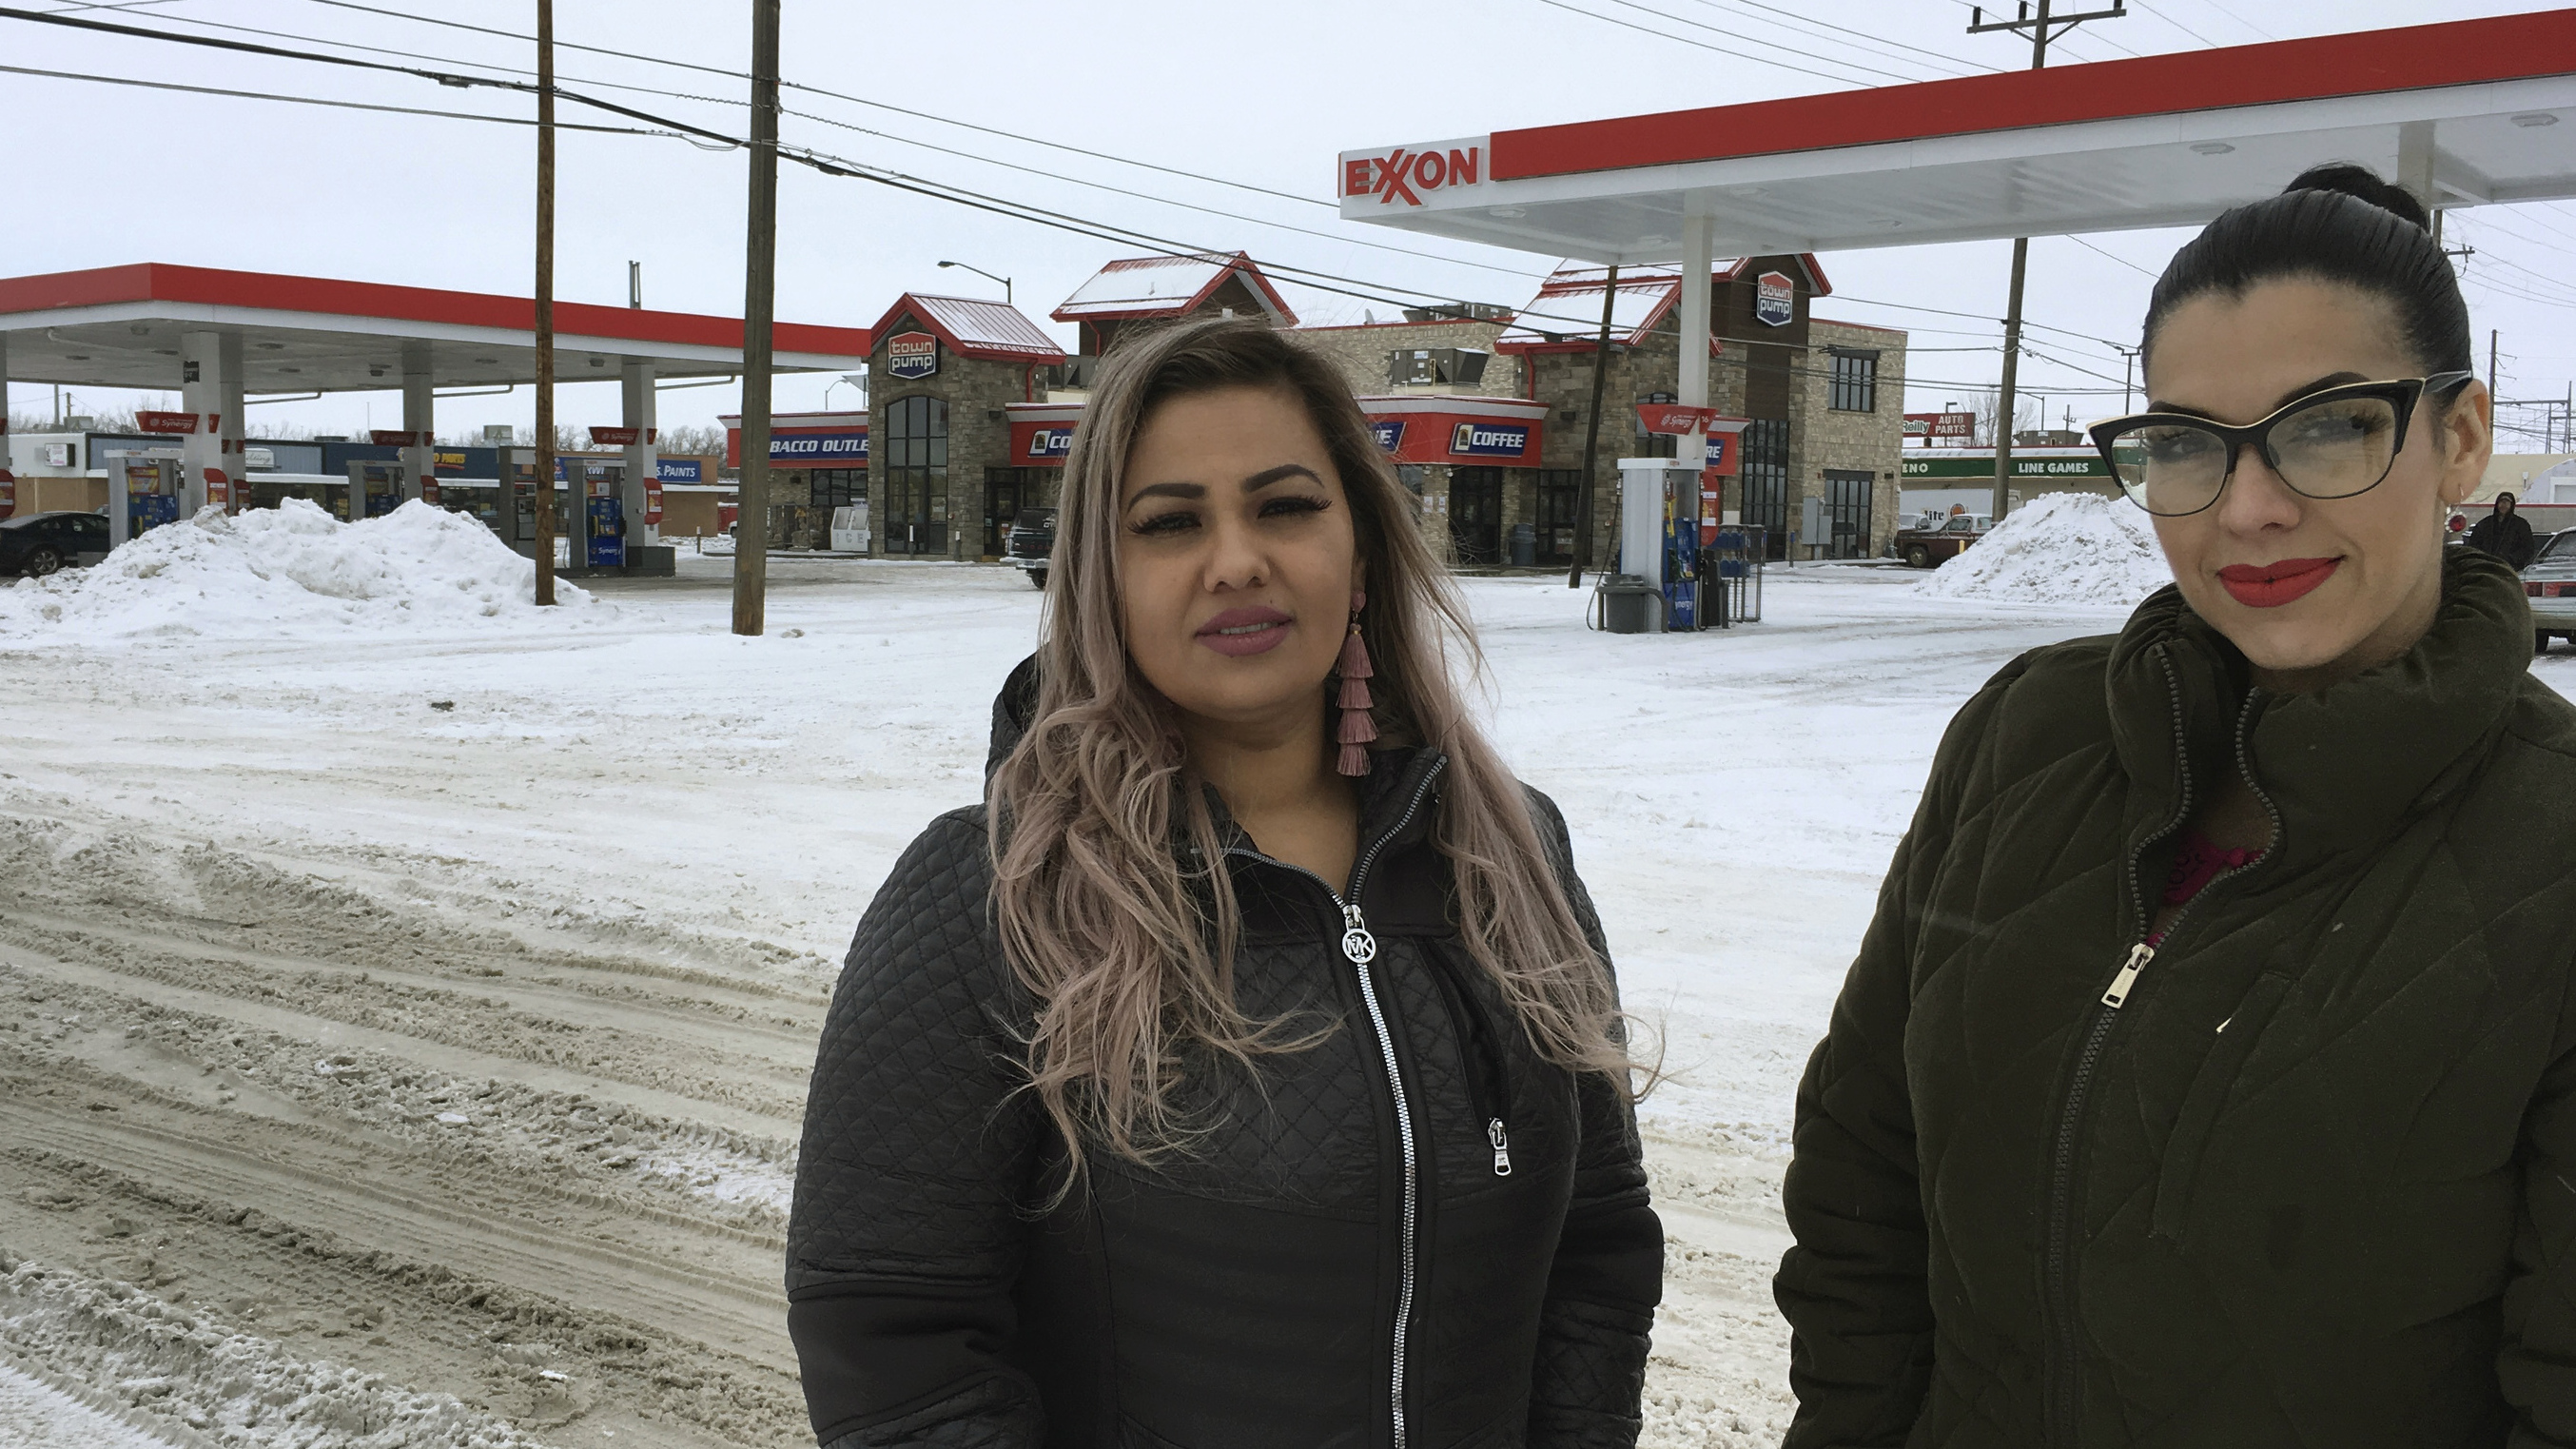 Americans Who Were Detained After Speaking Spanish In Montana Sue U.S. Border Agency